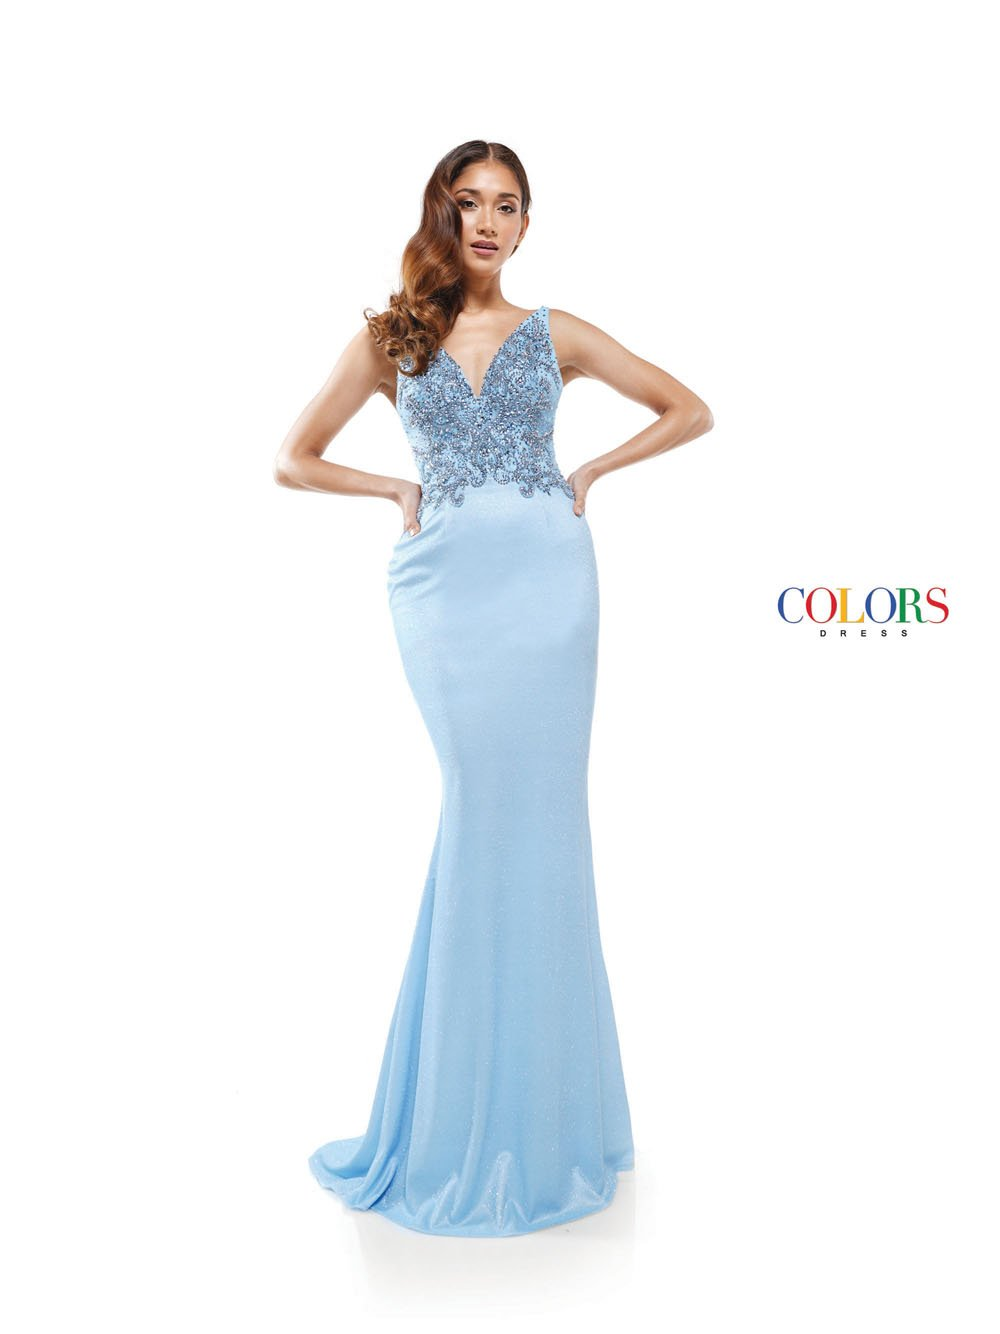 Colors Dress 2309 prom dress images.  Colors 2309 dresses are available in these colors: Light Blue, Navy, Off White.